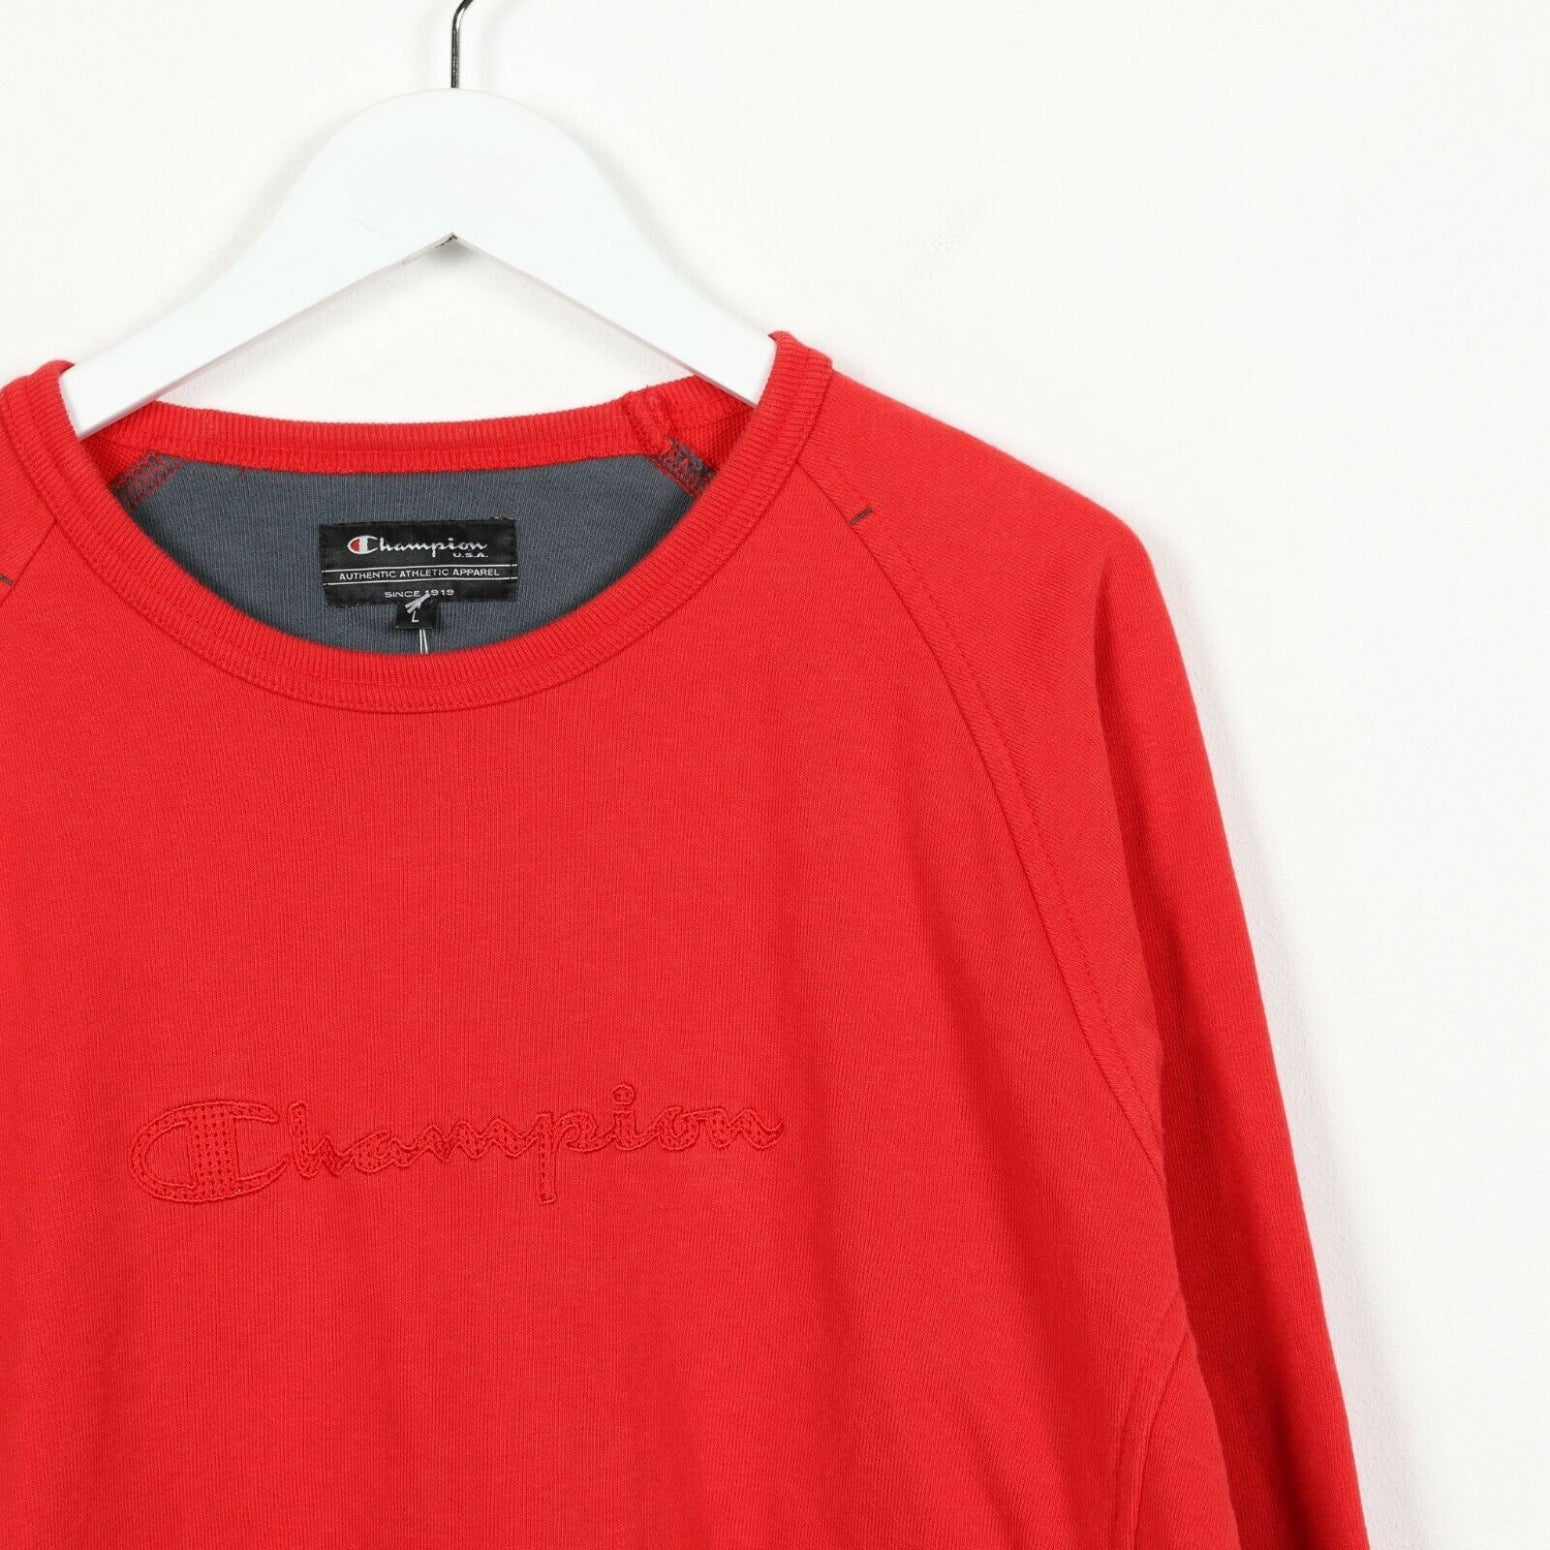 Vintage CHAMPION Spell Out Sweatshirt Jumper Red Large L